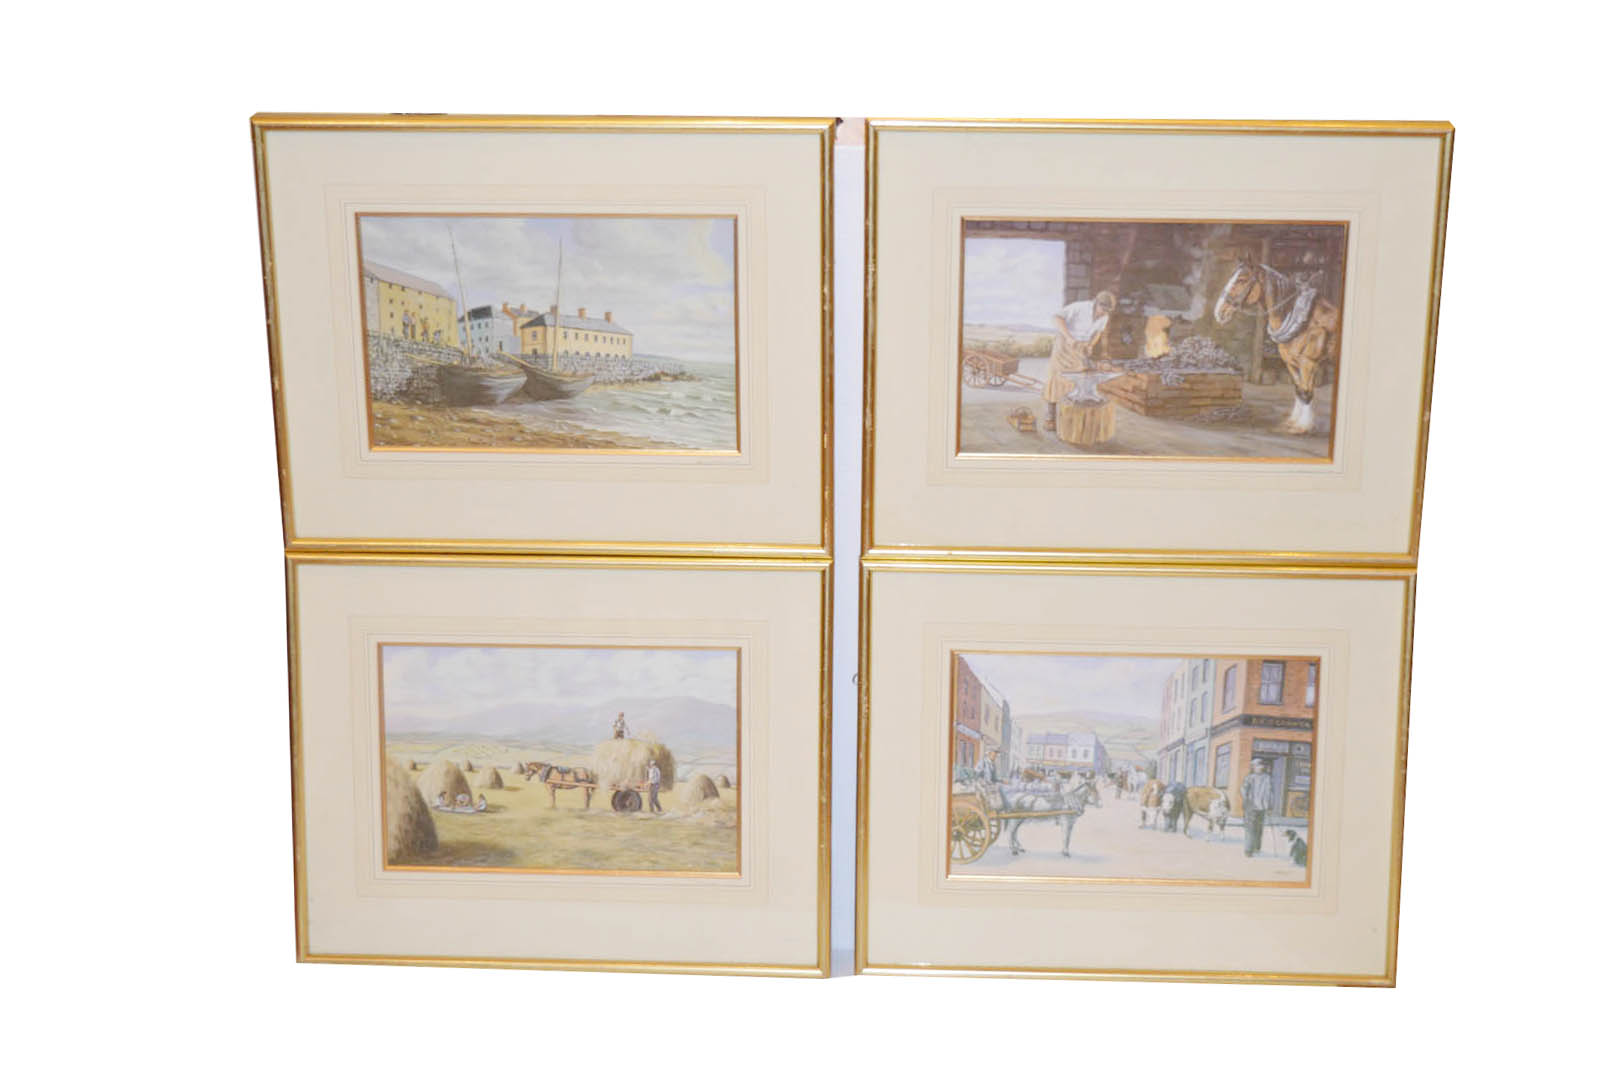 Lot 346 - A Gilt Framed Set of Four Pictures, 'Fair Day' 'Harvest Time' etc - Lynch